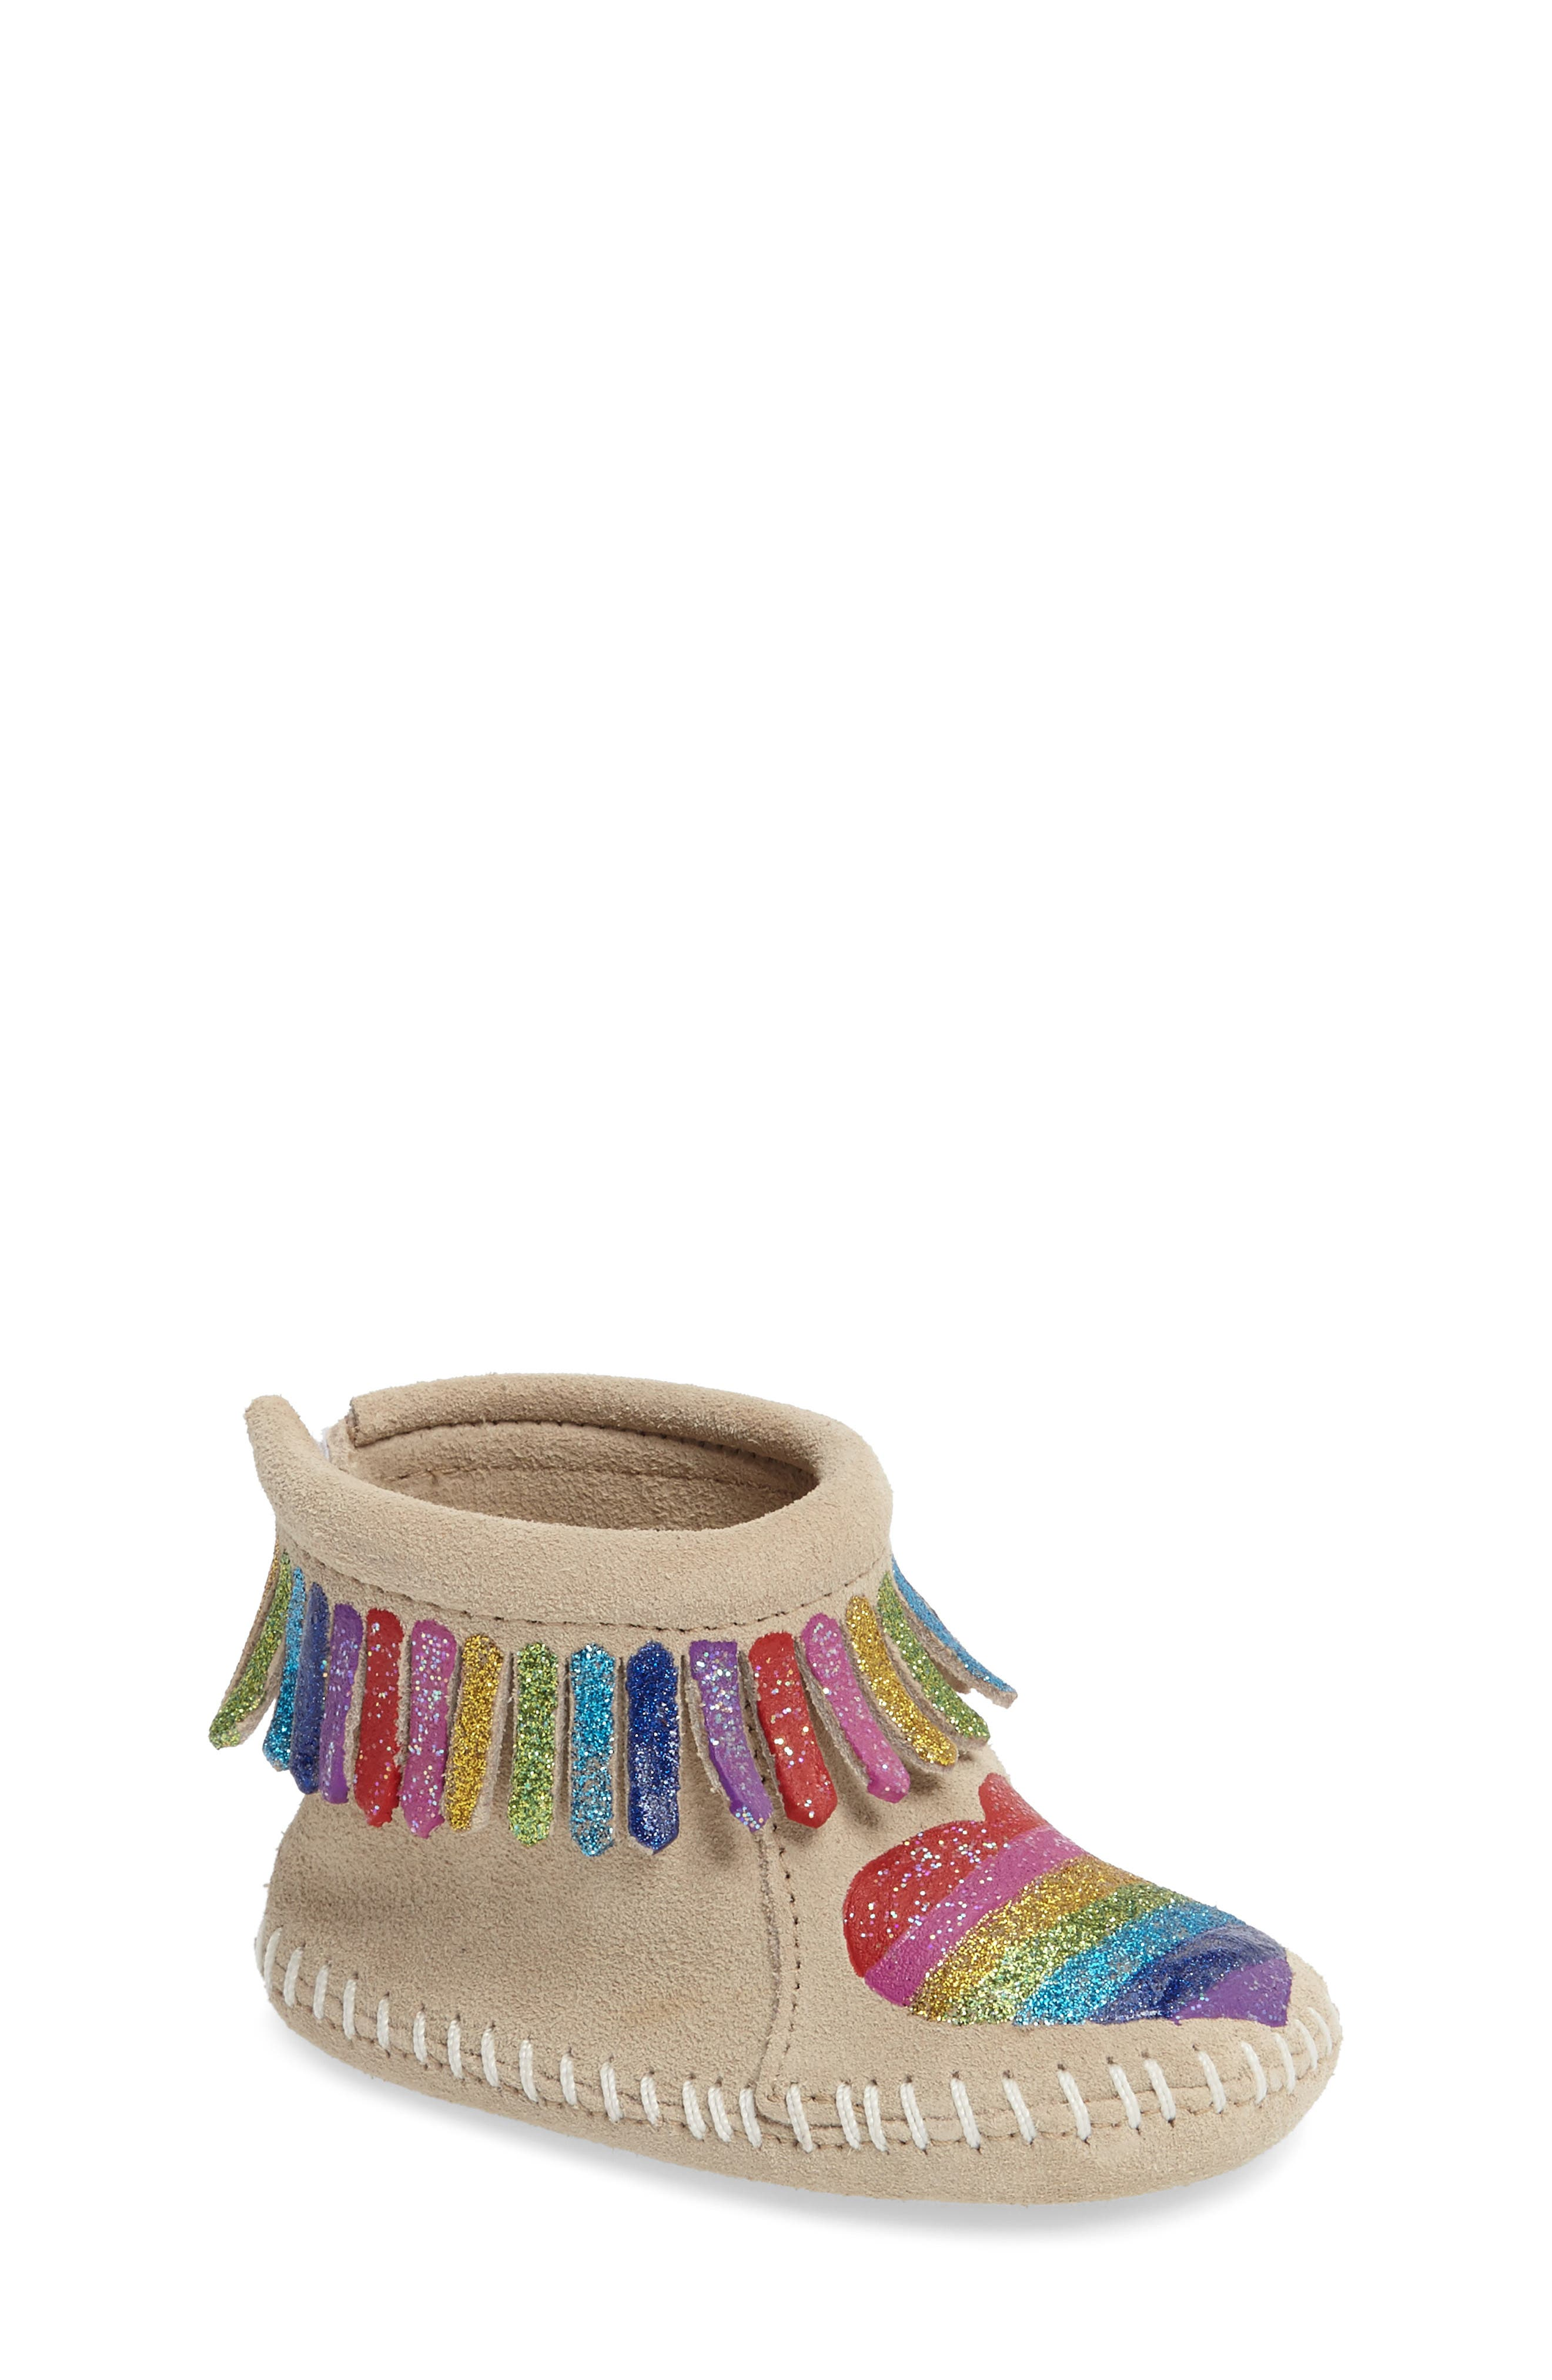 MINNETONKA x Free Range Mama Love One Another Bootie, Main, color, STONE